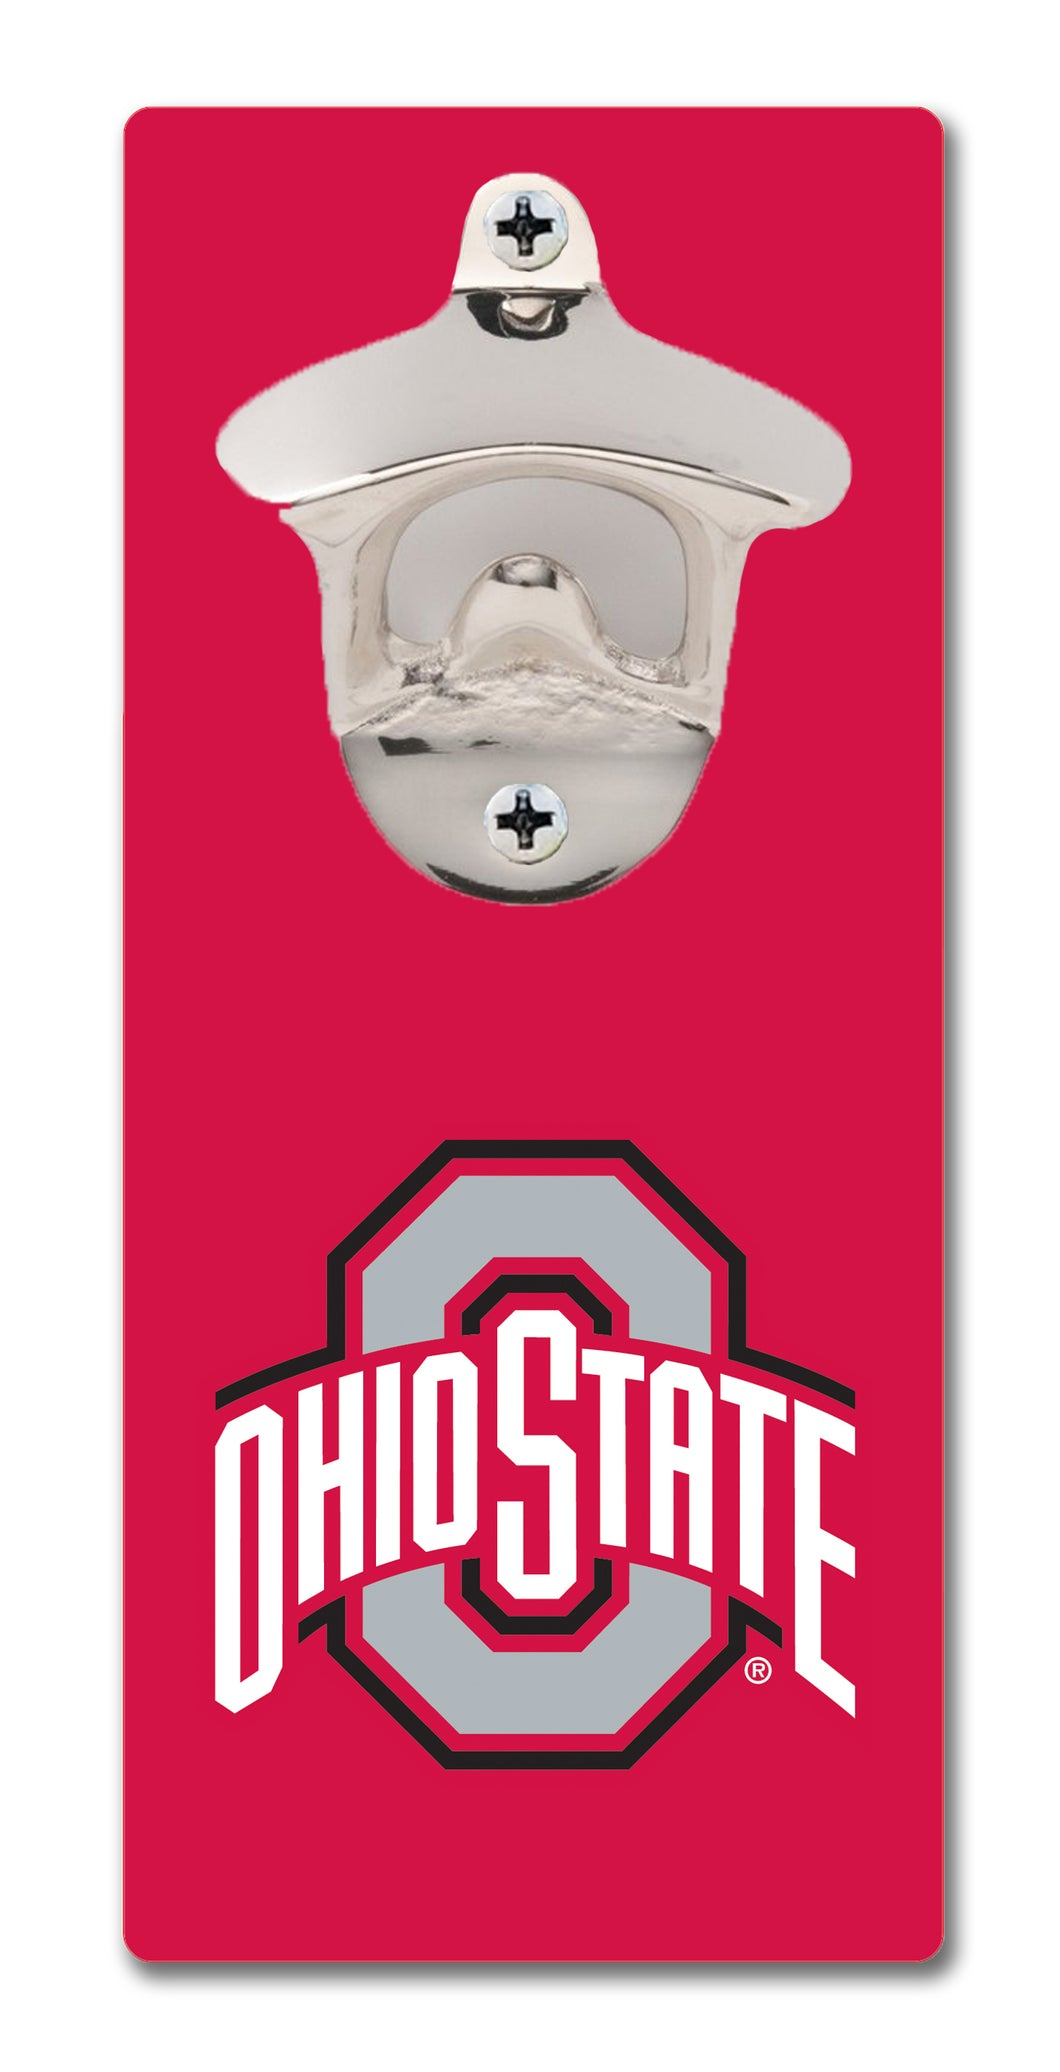 Ohio State University - Block O Scarlet - Magnetic Bottle Opener